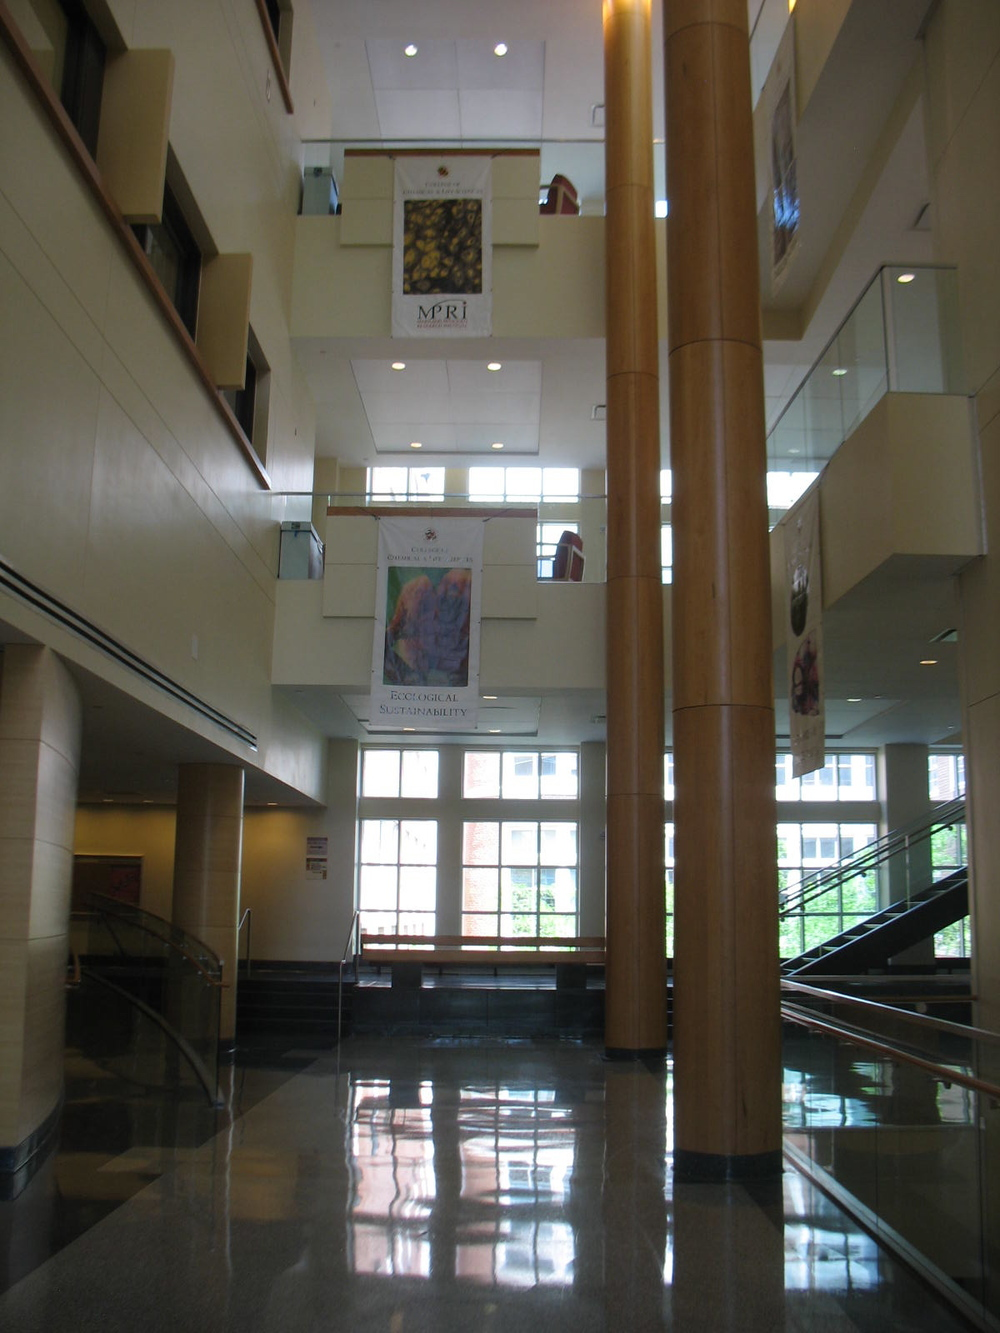 As you enter the Bioscience Research Building and walk through the light-infused atrium, you can plan the day's experiments.